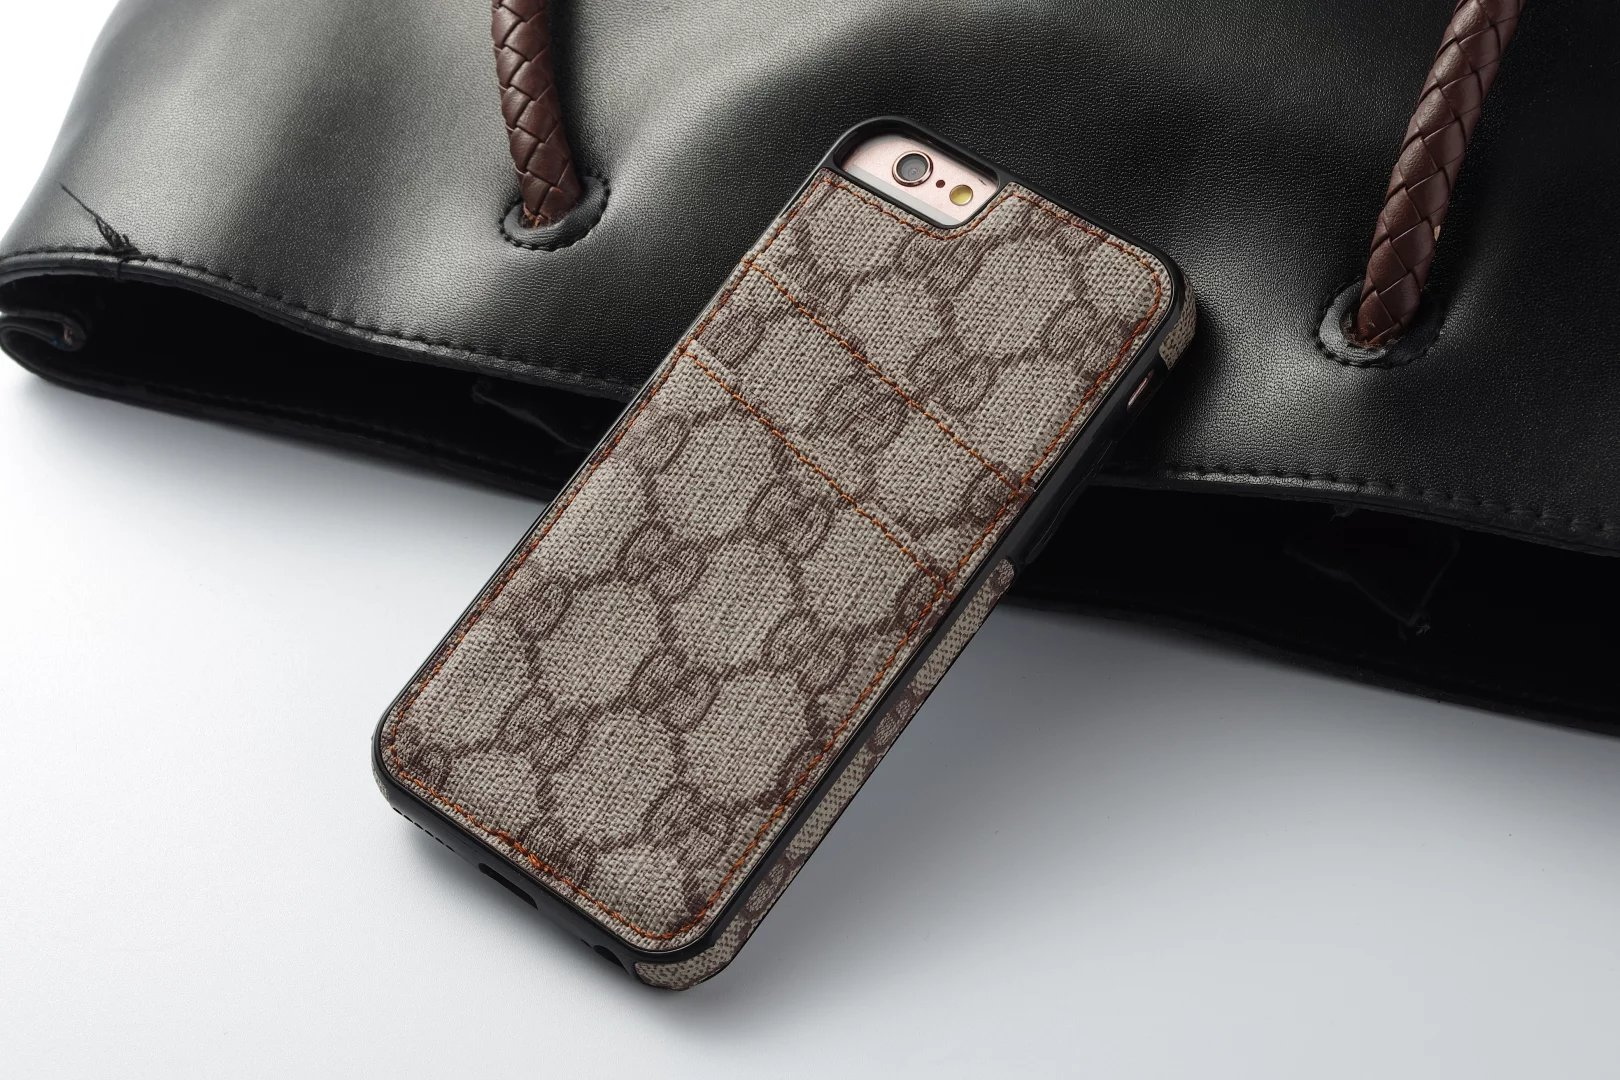 covers for the iphone 6 iphone 6 case maker fashion iphone6 case iphone cases 6 unique iphone 6 cases iphone 6 news iphone 6 cases protective real iphone 6 iphone 6 price and specification